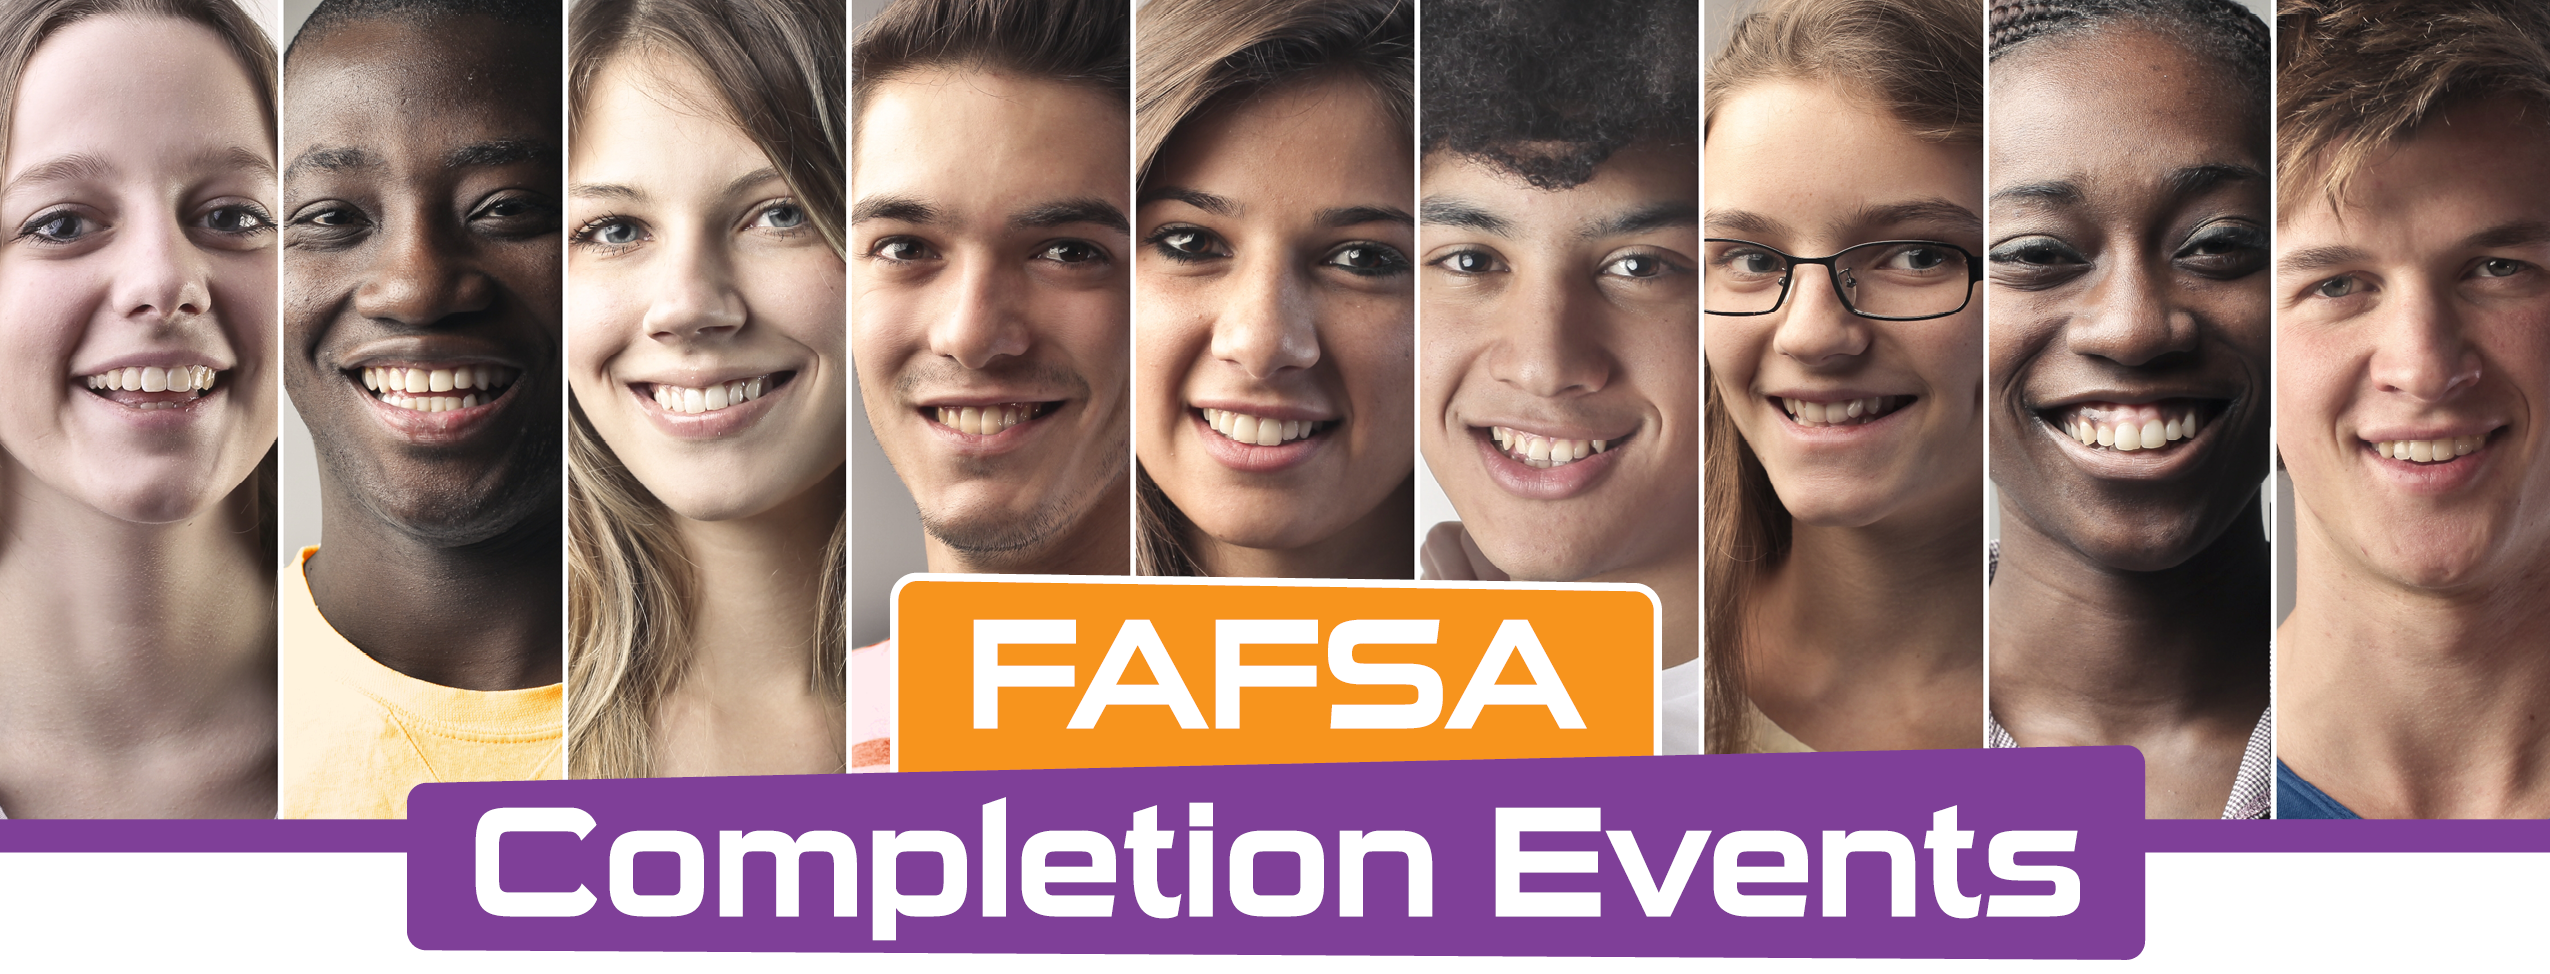 FAFSA Completion Event